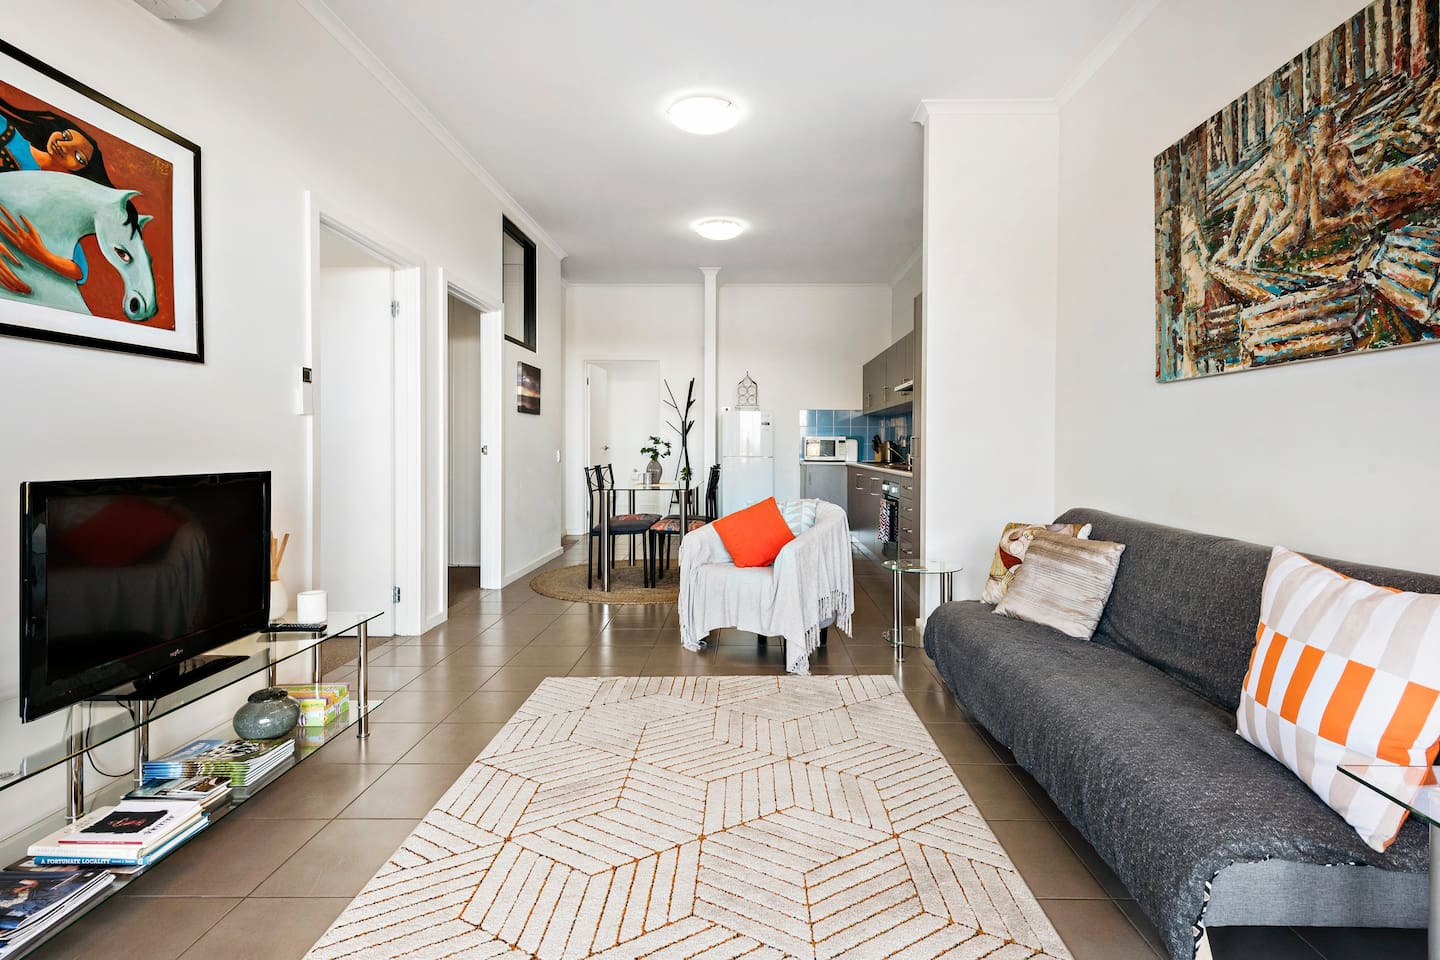 """Open plan modern Kitchen and Living, two separate bedrooms & extra sofa bed. """"The apartment is amazing, really spacious, homely. The main room is a great size, & bed was super comfy. 100% great value for money. We'd definitely stay again """"Nicole*****"""